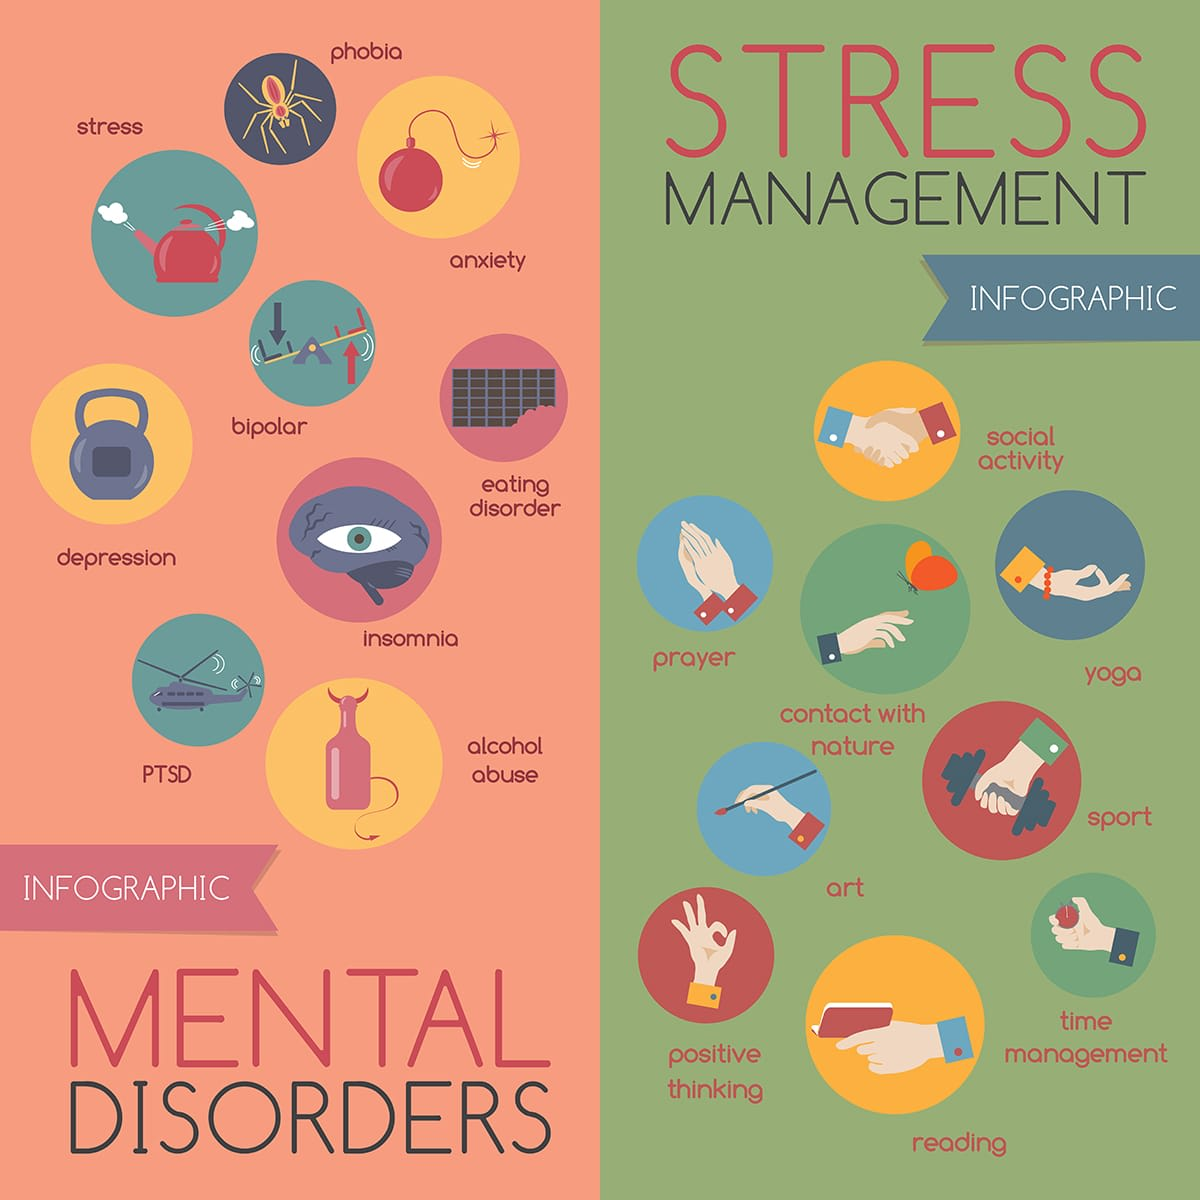 infographic of mental disorders and stress management